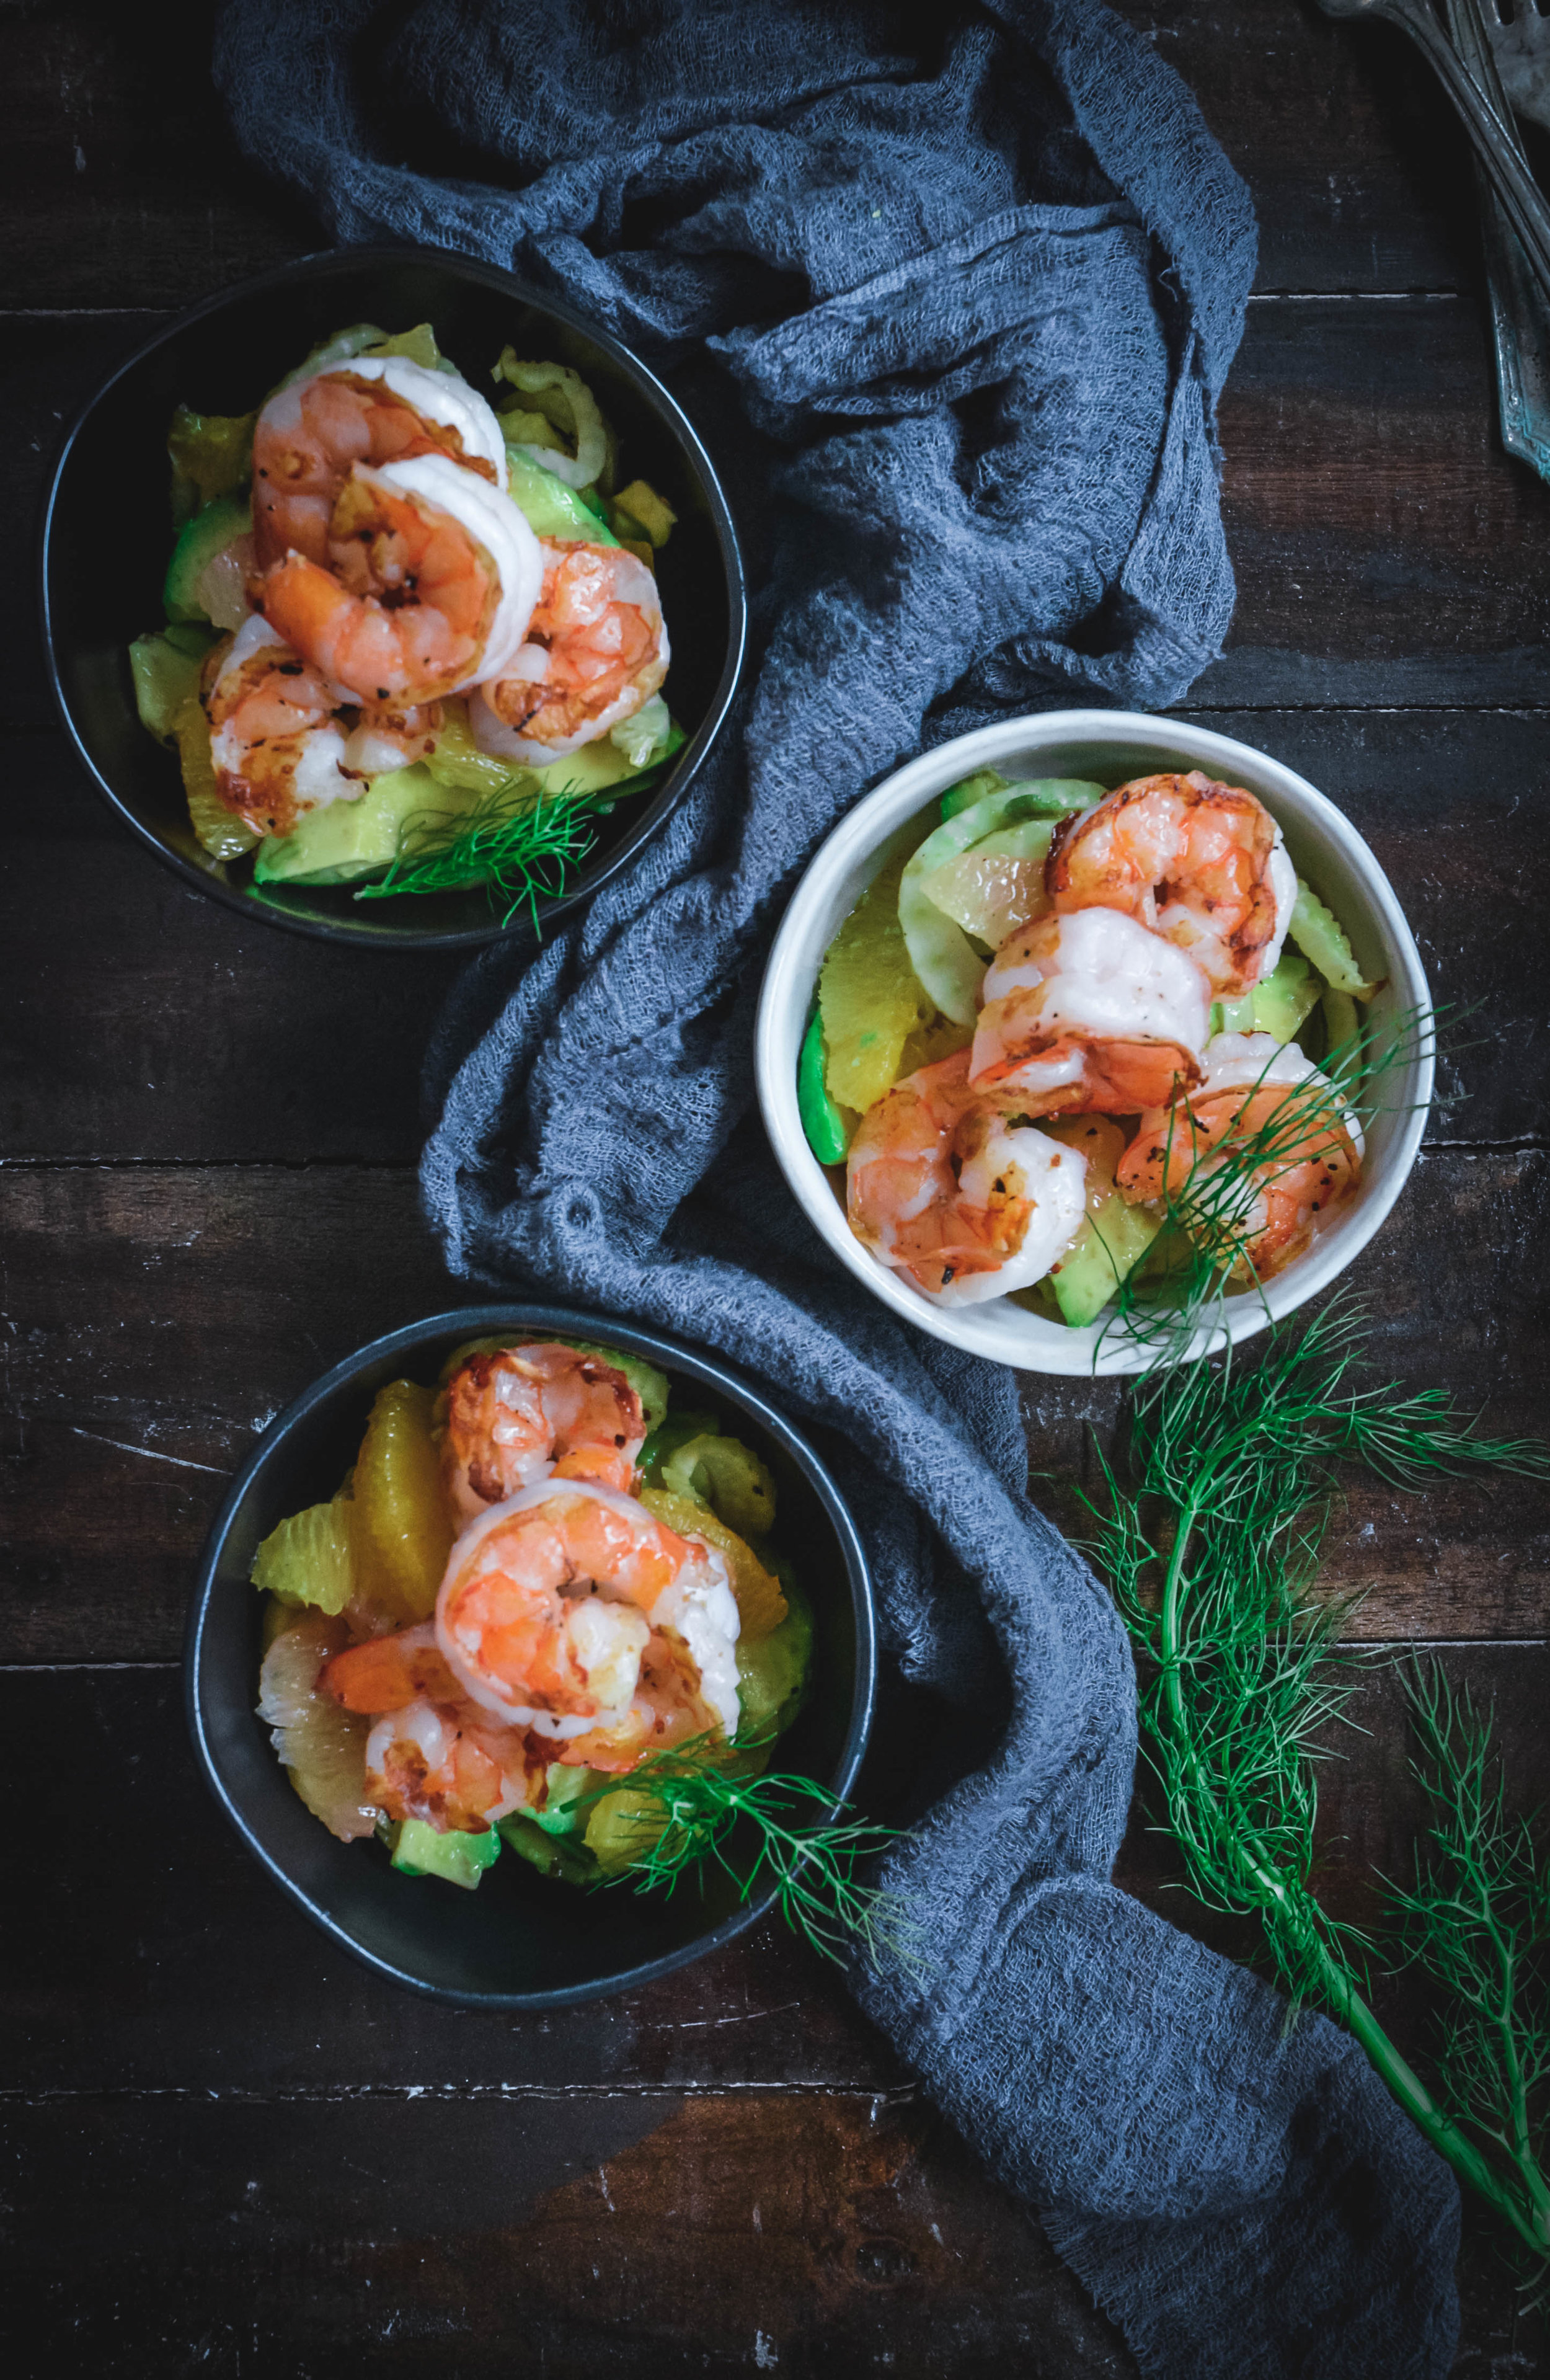 fennel, avocado, citrus and shrimp salad